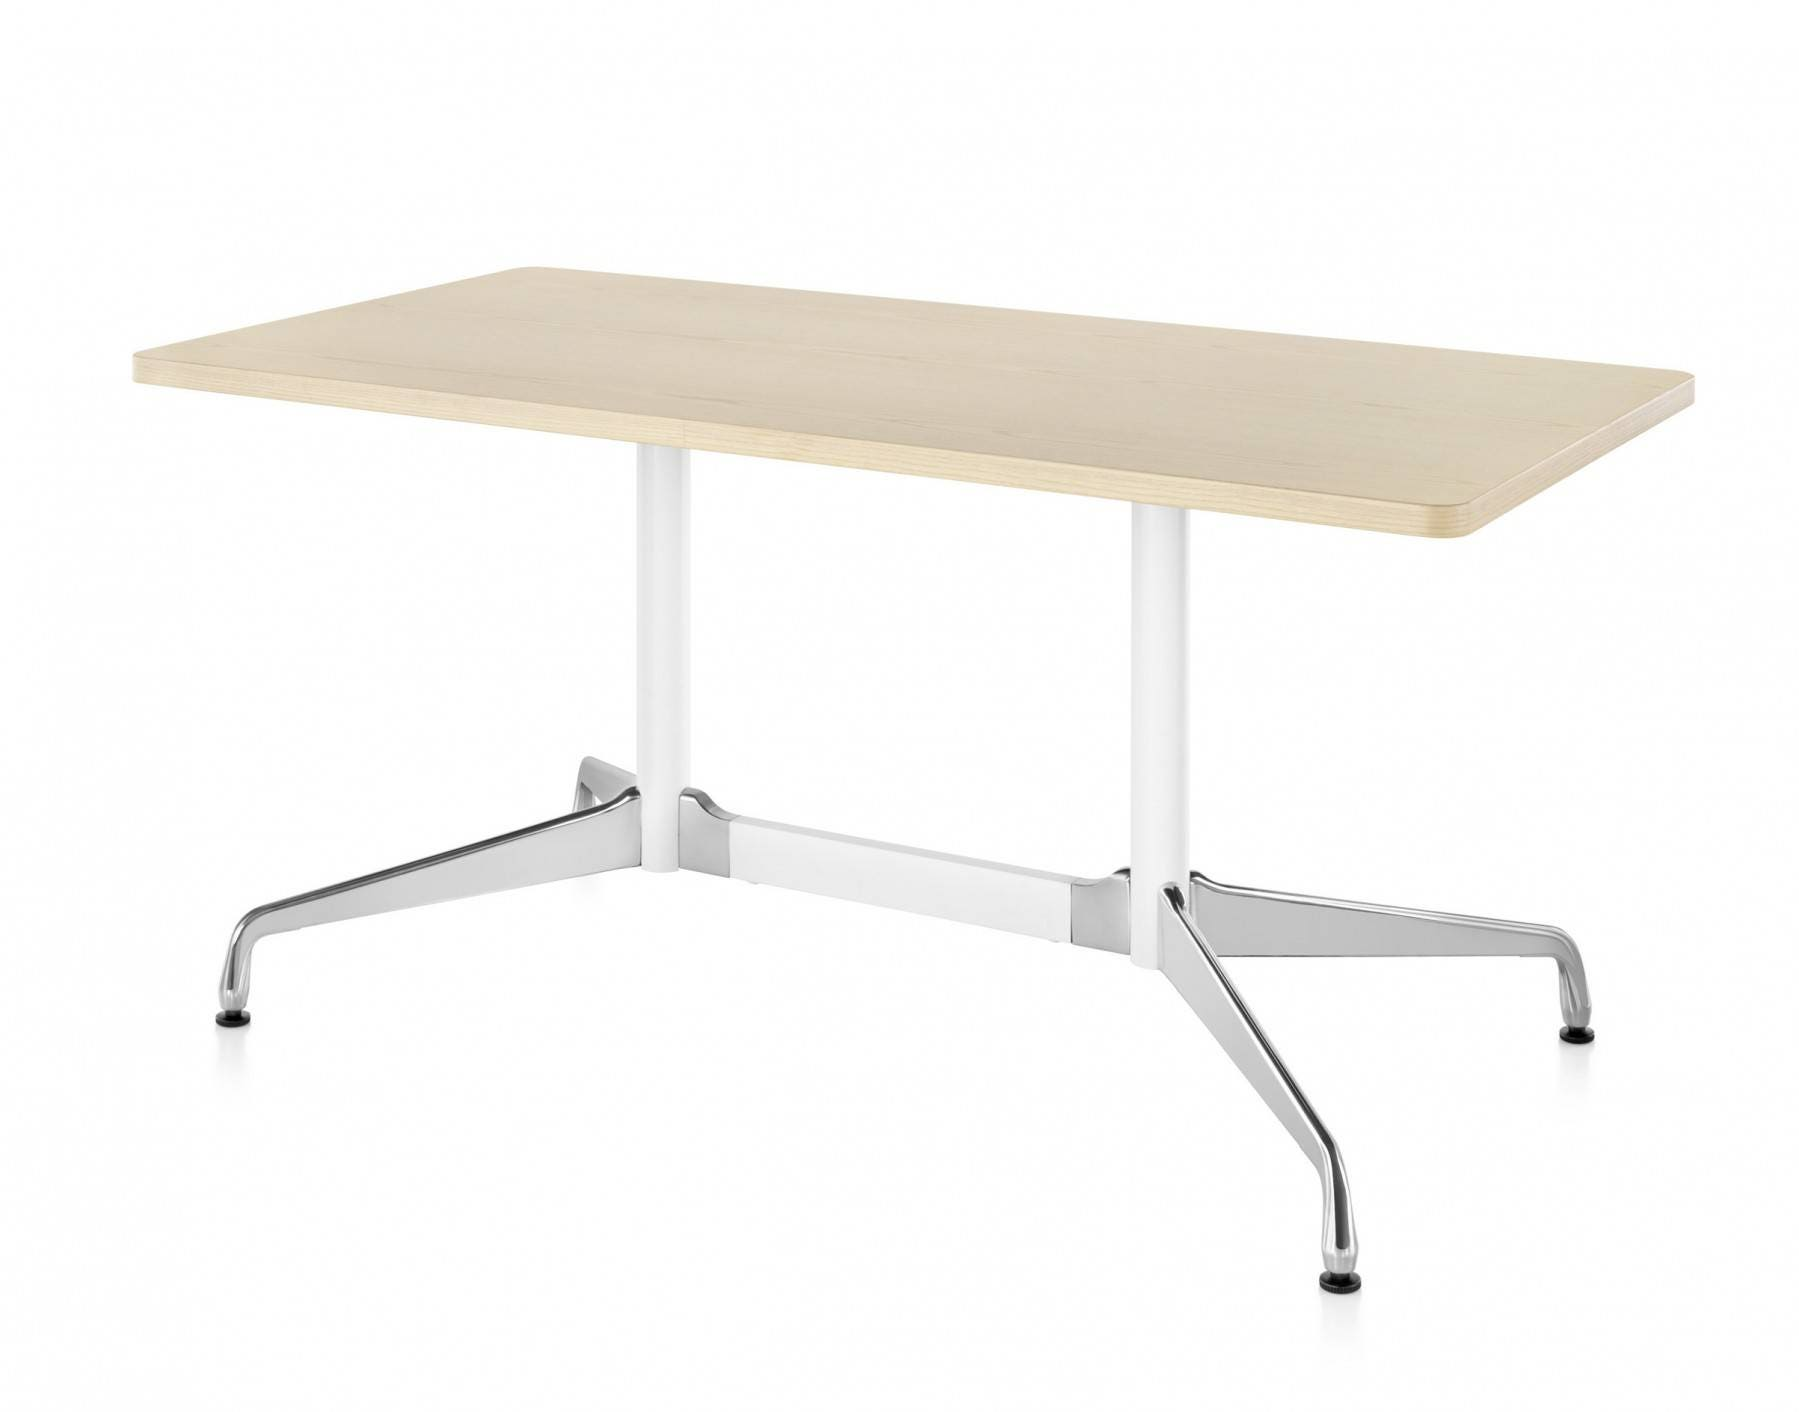 Herman Miller Eames Conference Table Rectangular With Segmented Base 1